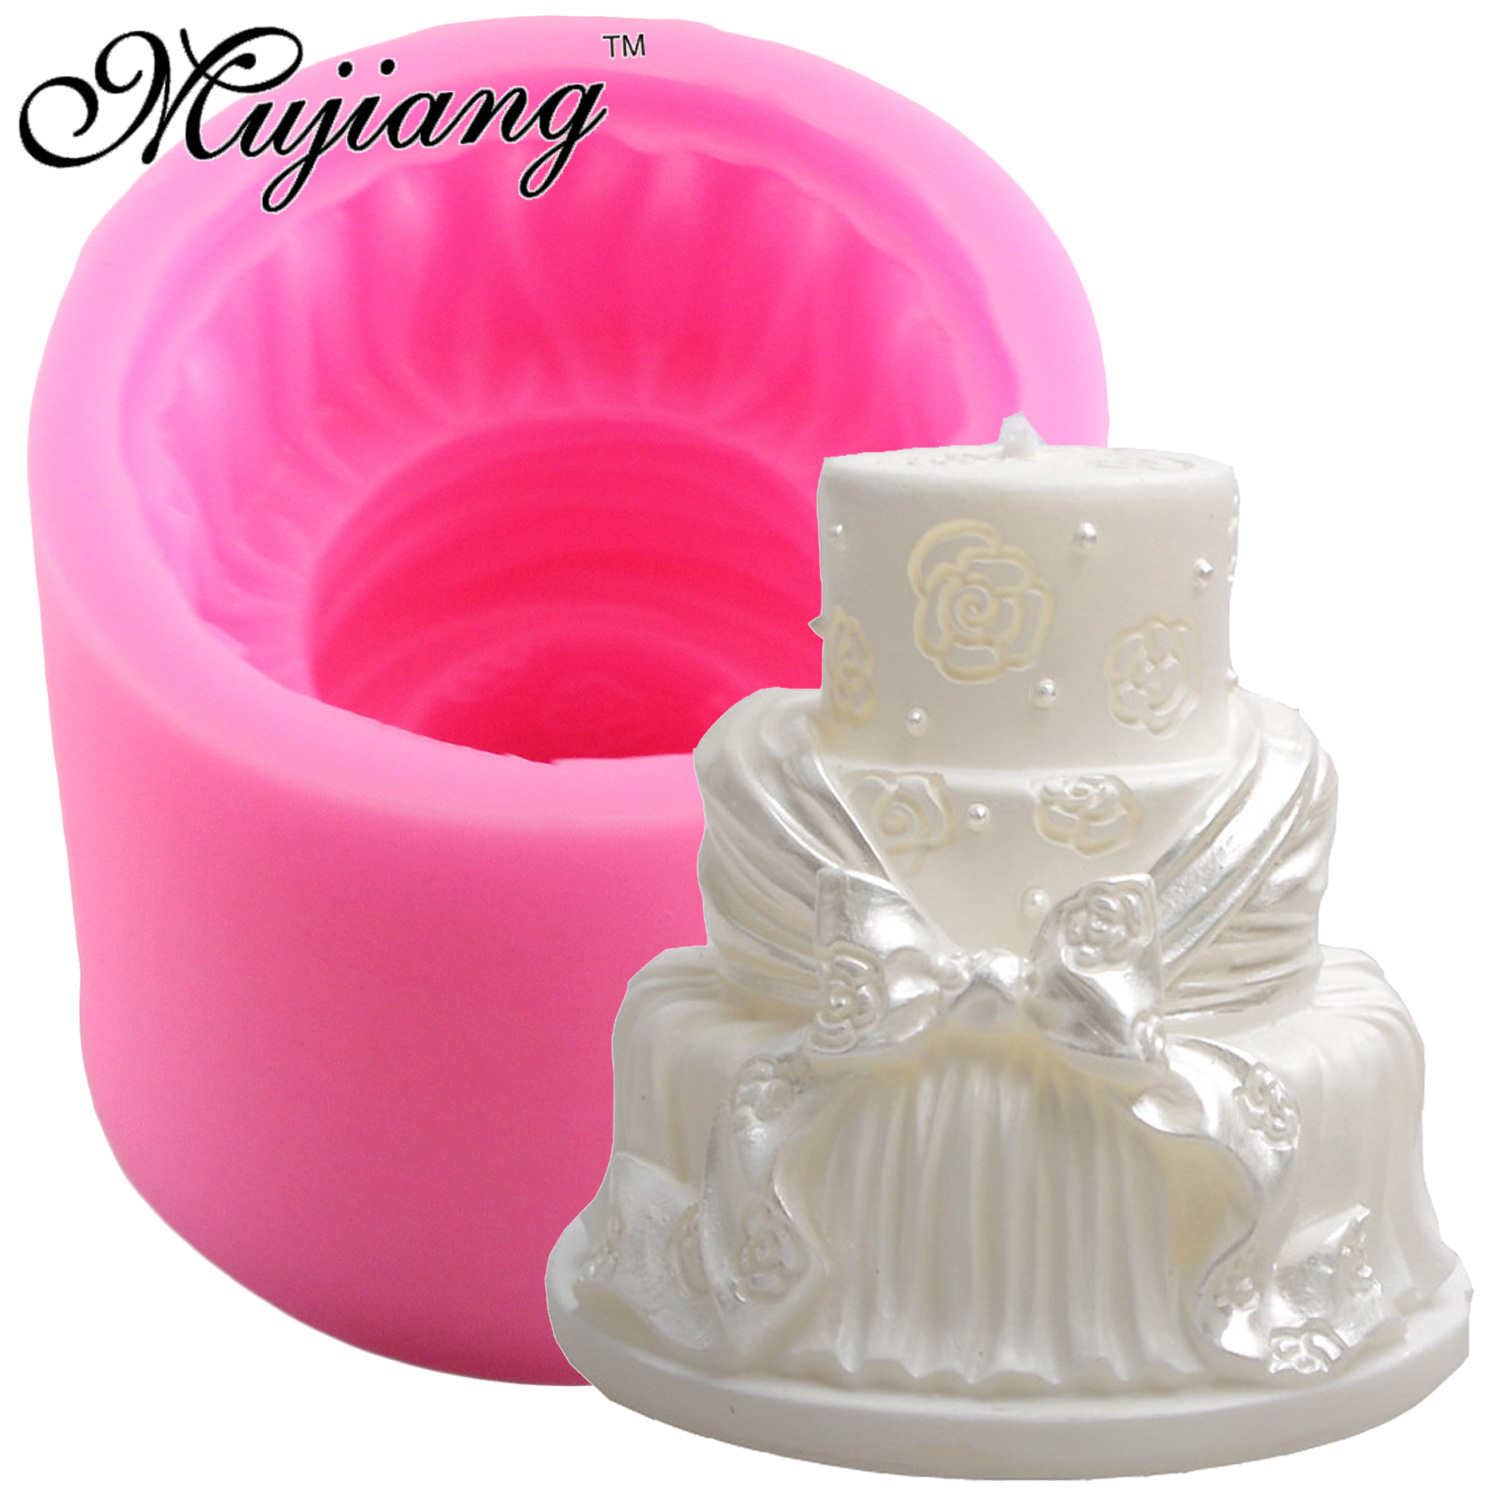 Mujiang Wedding Cake Soap Silicone Mold Fondant Cake Decorating Tools 3D Chocolate Candy Molds DIY Plaster Candle Clay Moulds